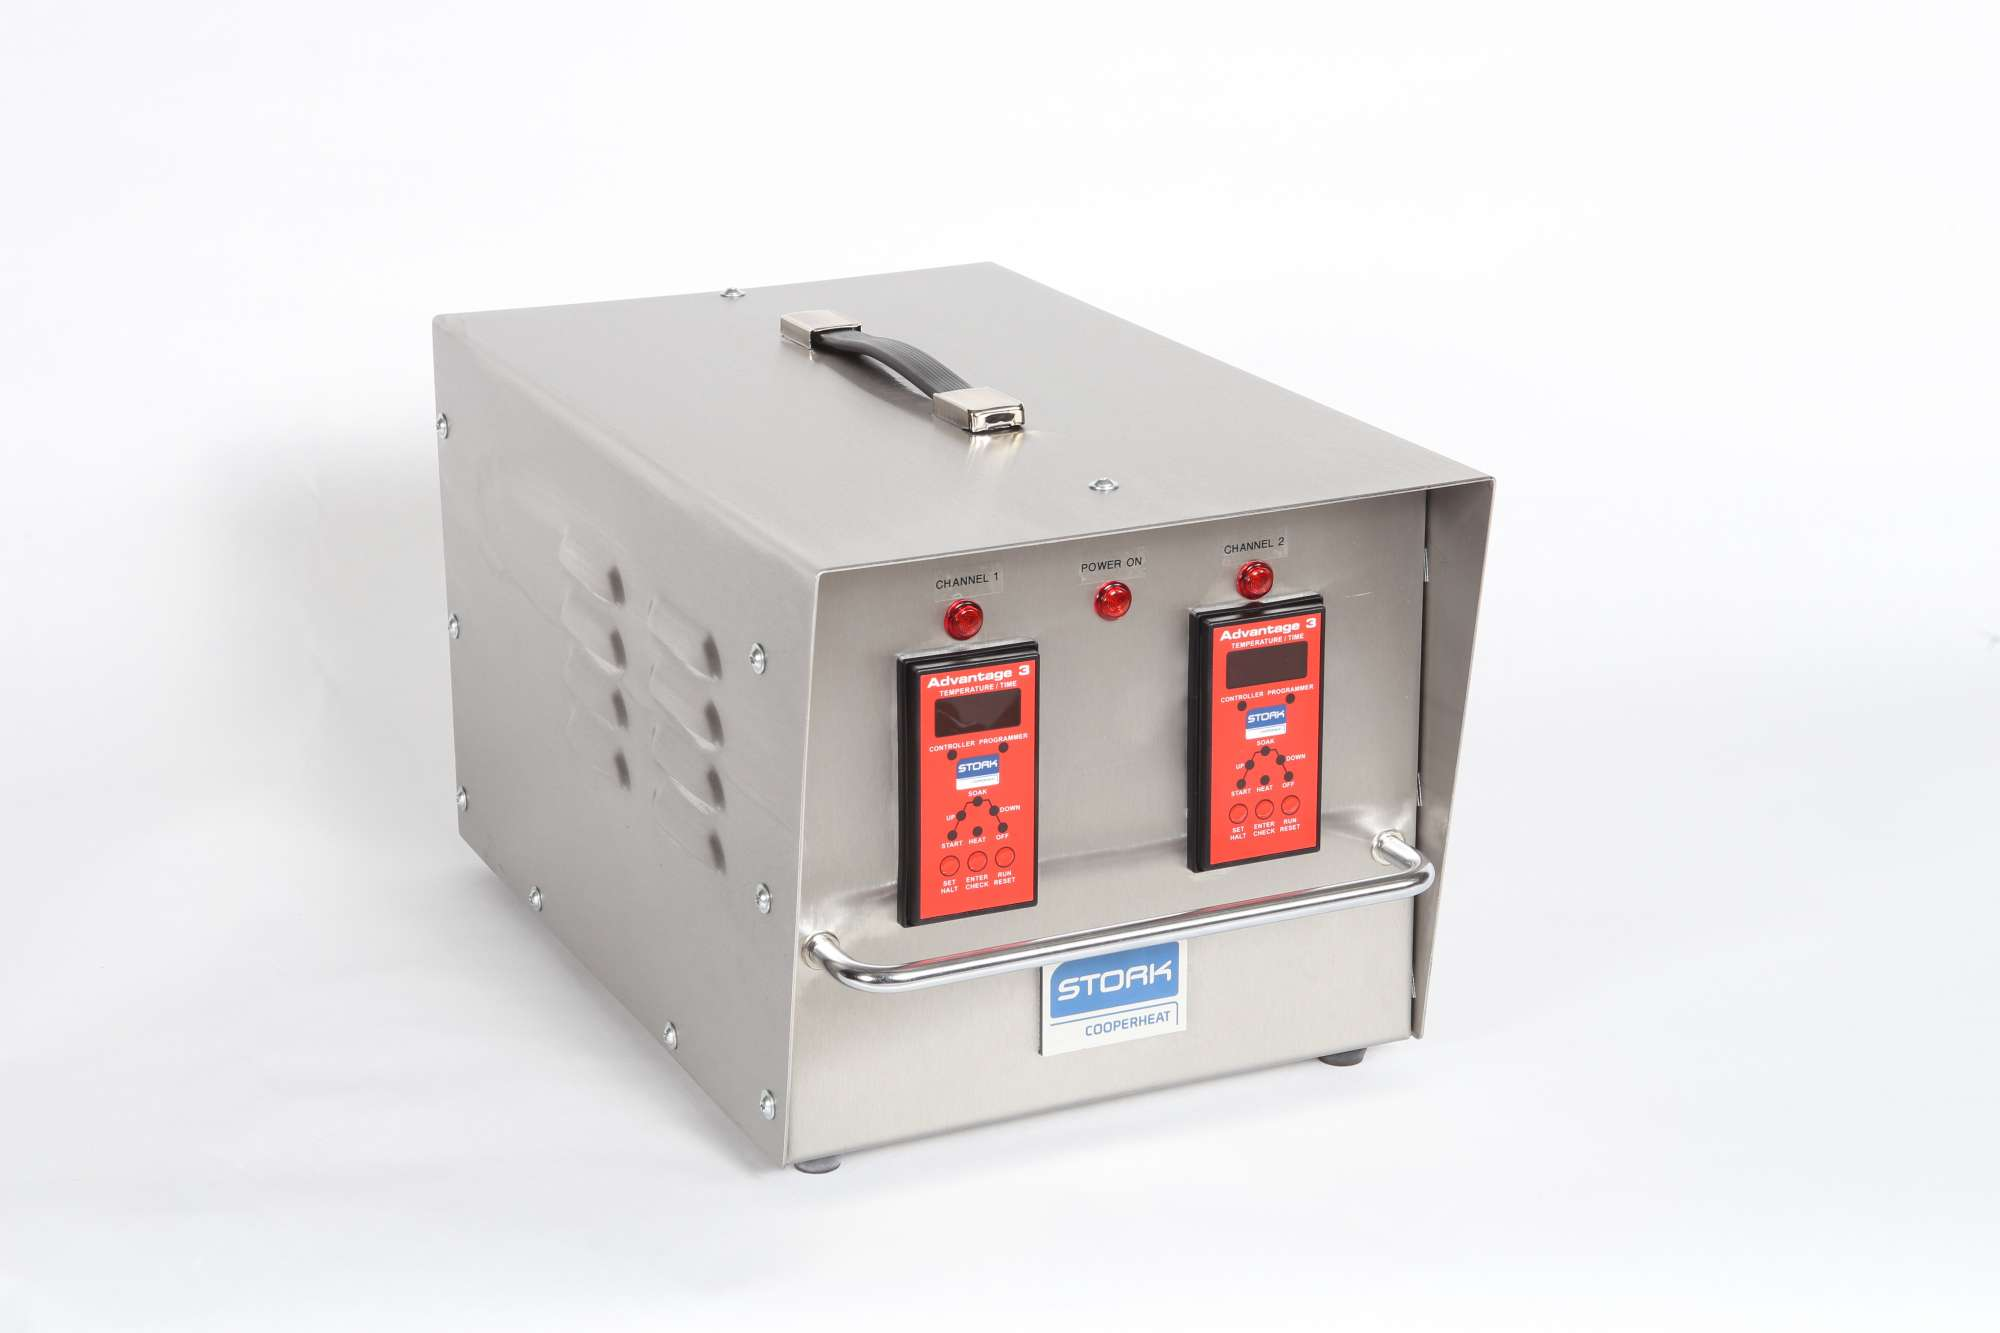 Image of Twin heat module in Stainless Steel case, with two Advantage 3 programmer/controllers